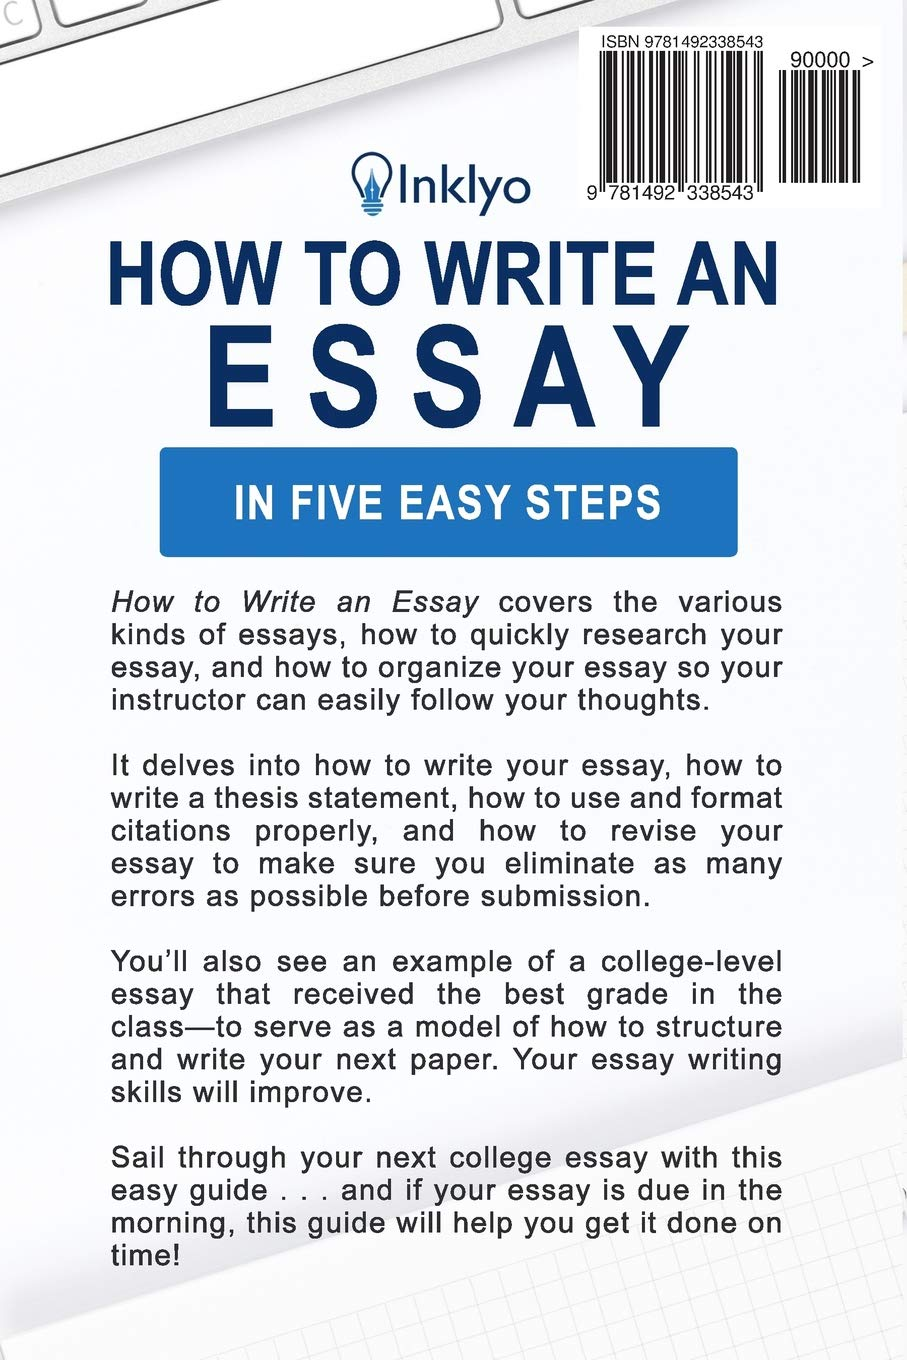 007 How To Make An Essay 71v7ckw5pll Unusual Outline Paper Introduction Title Page Full